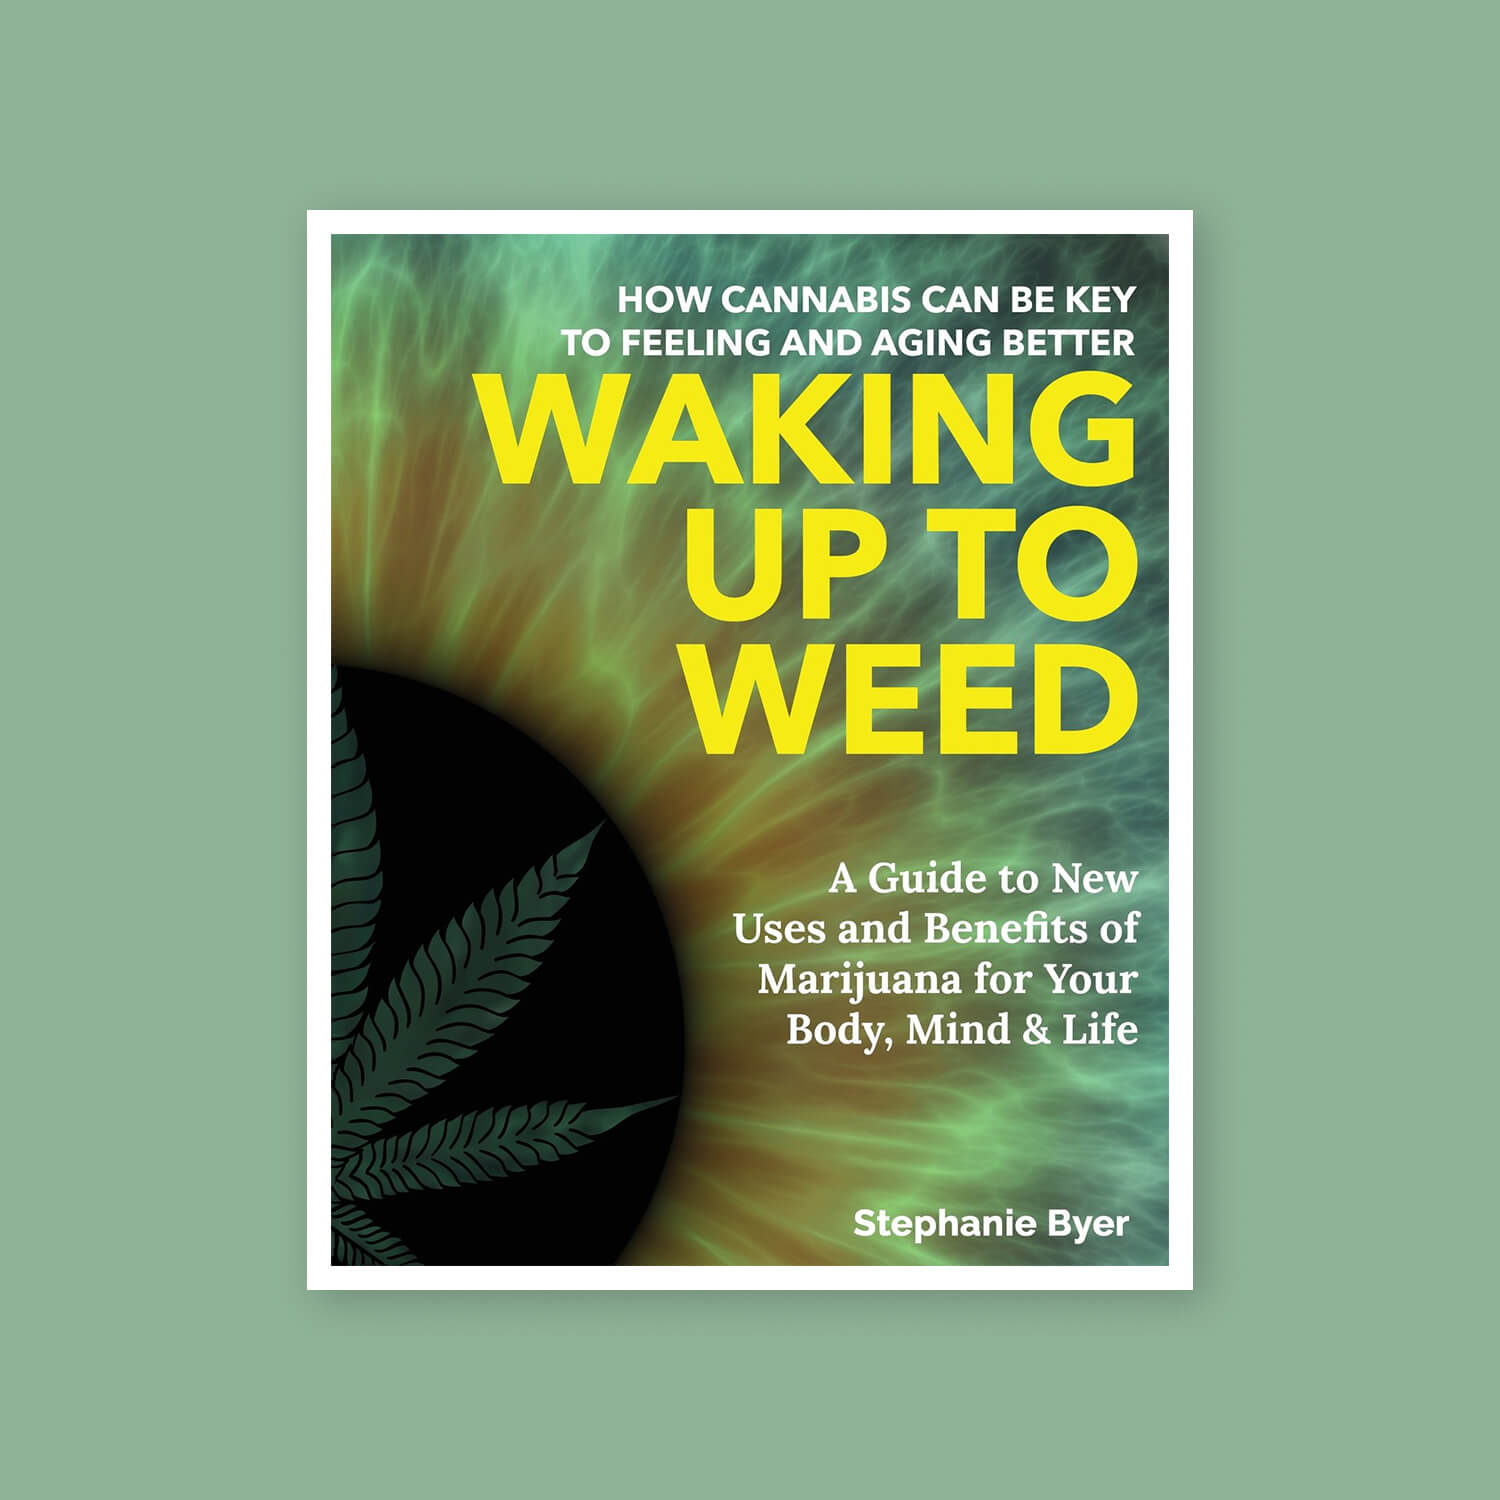 Waking up to weed - Goldleaf Bookclub